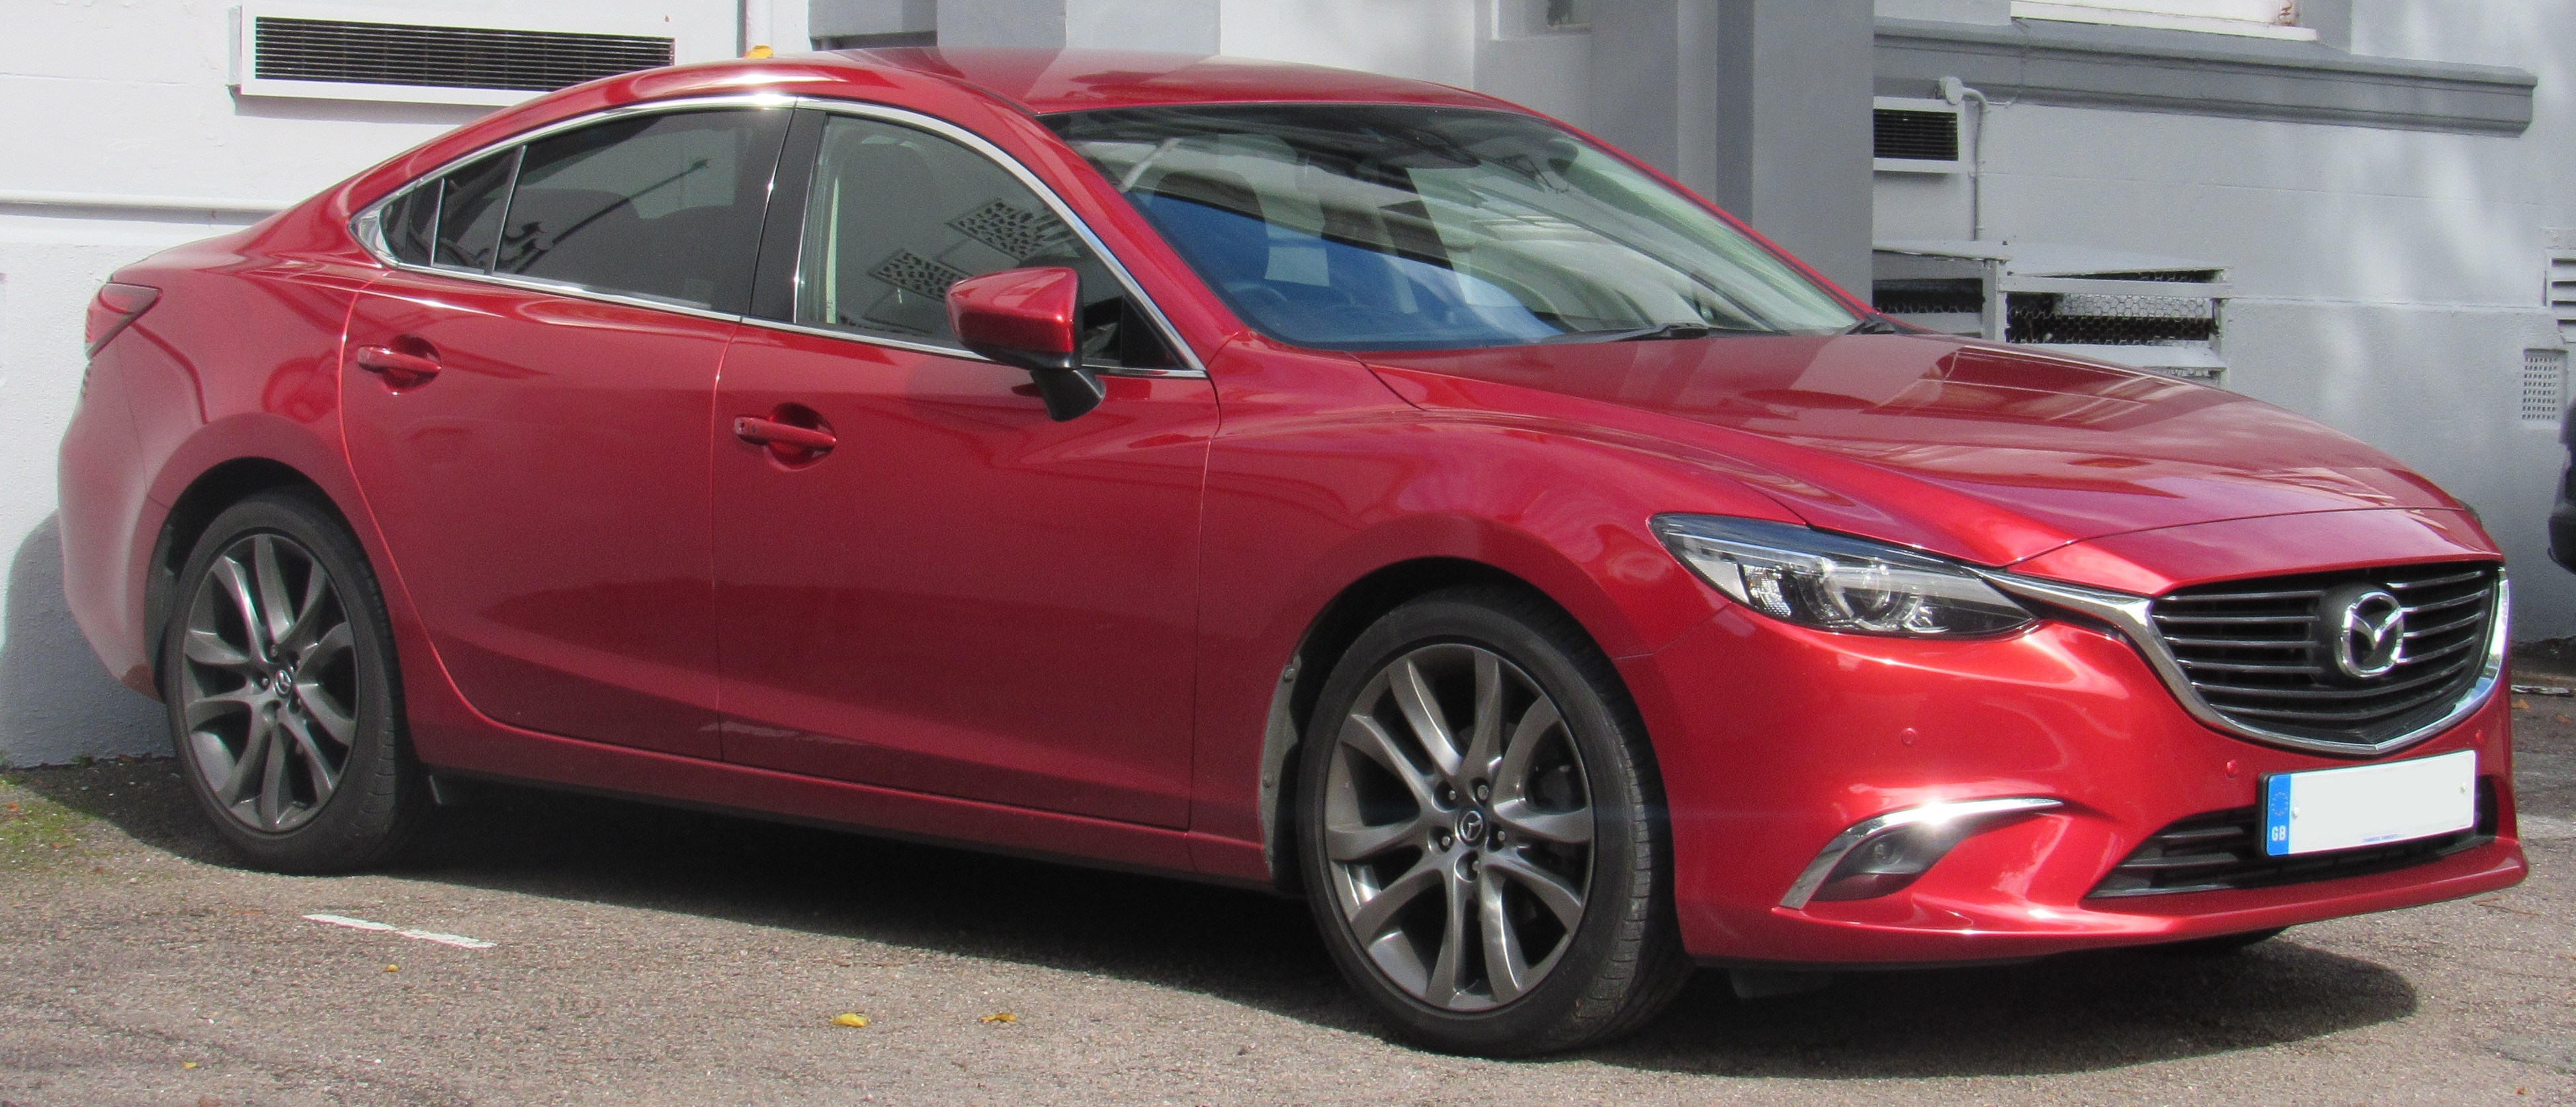 https://upload.wikimedia.org/wikipedia/commons/e/ea/2015_Mazda6_Sport_2.2.jpg